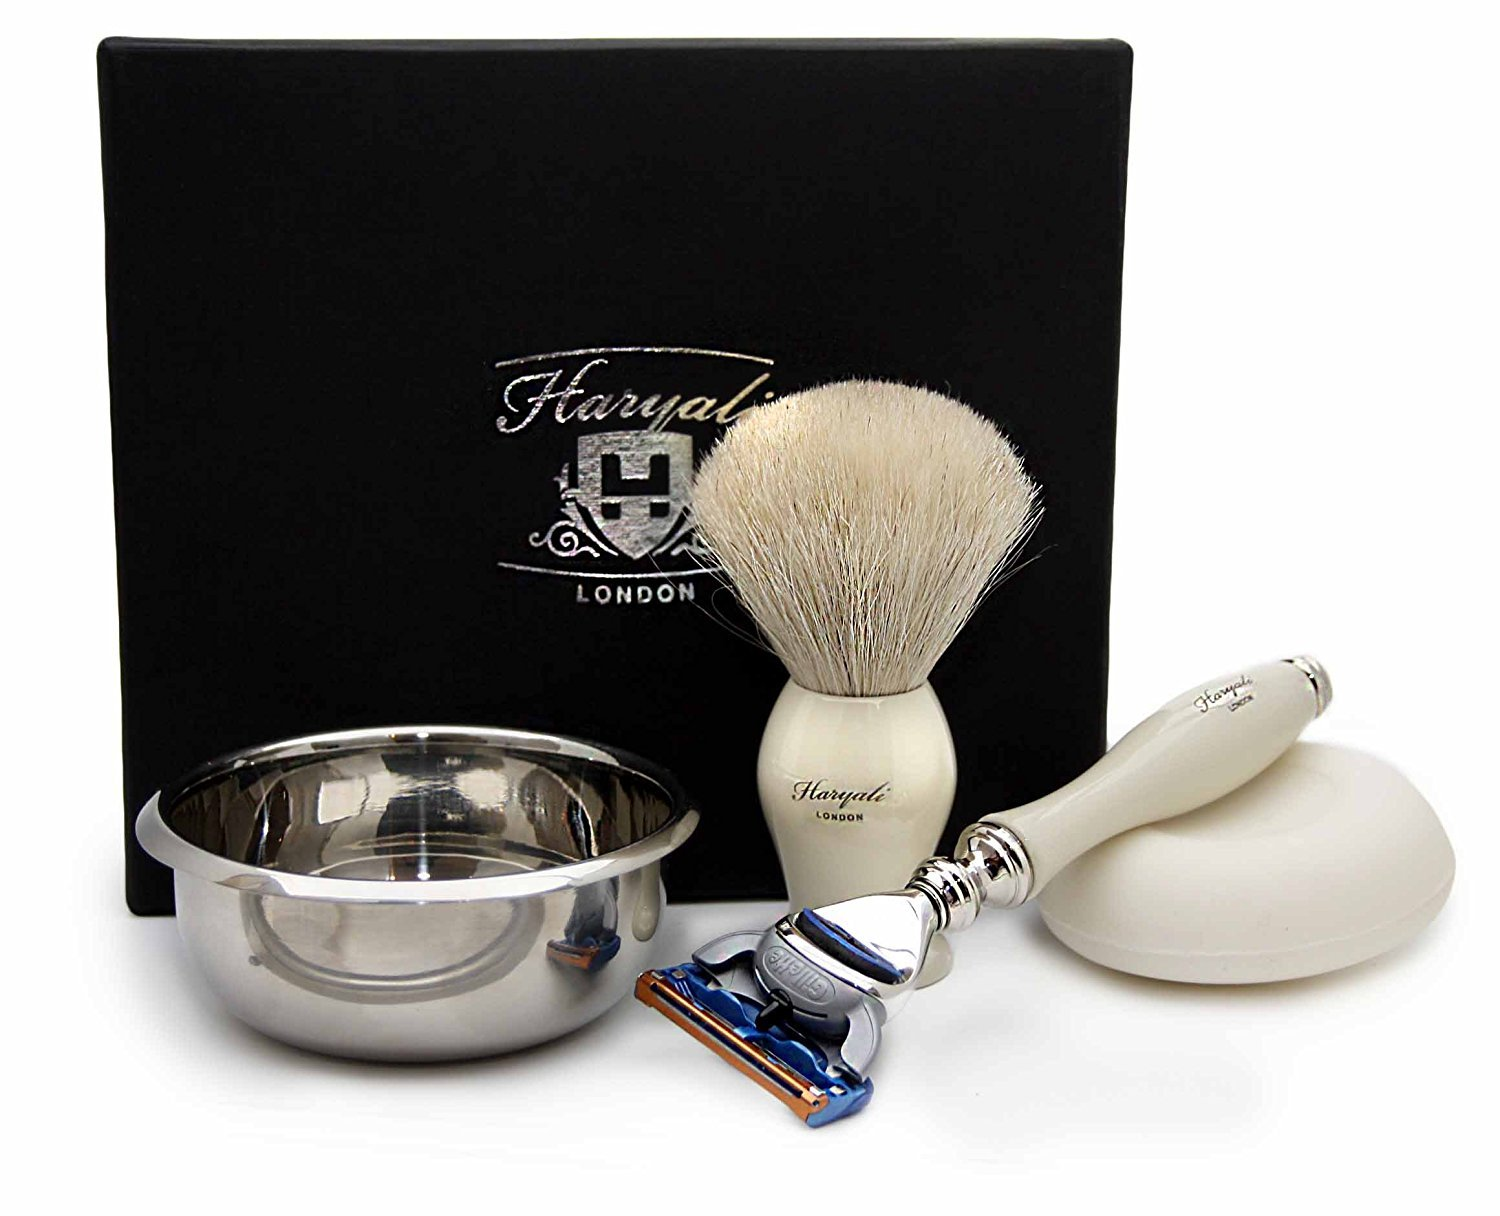 White Hair Badger Hair Set In Ivory Color. The Set Includes Shaving Brush,3 Different Razors Type To choose(BLADES NOT INCLUDED), Stainless Steal Bowl & FREE Soap (Gillette Fusion Razor)